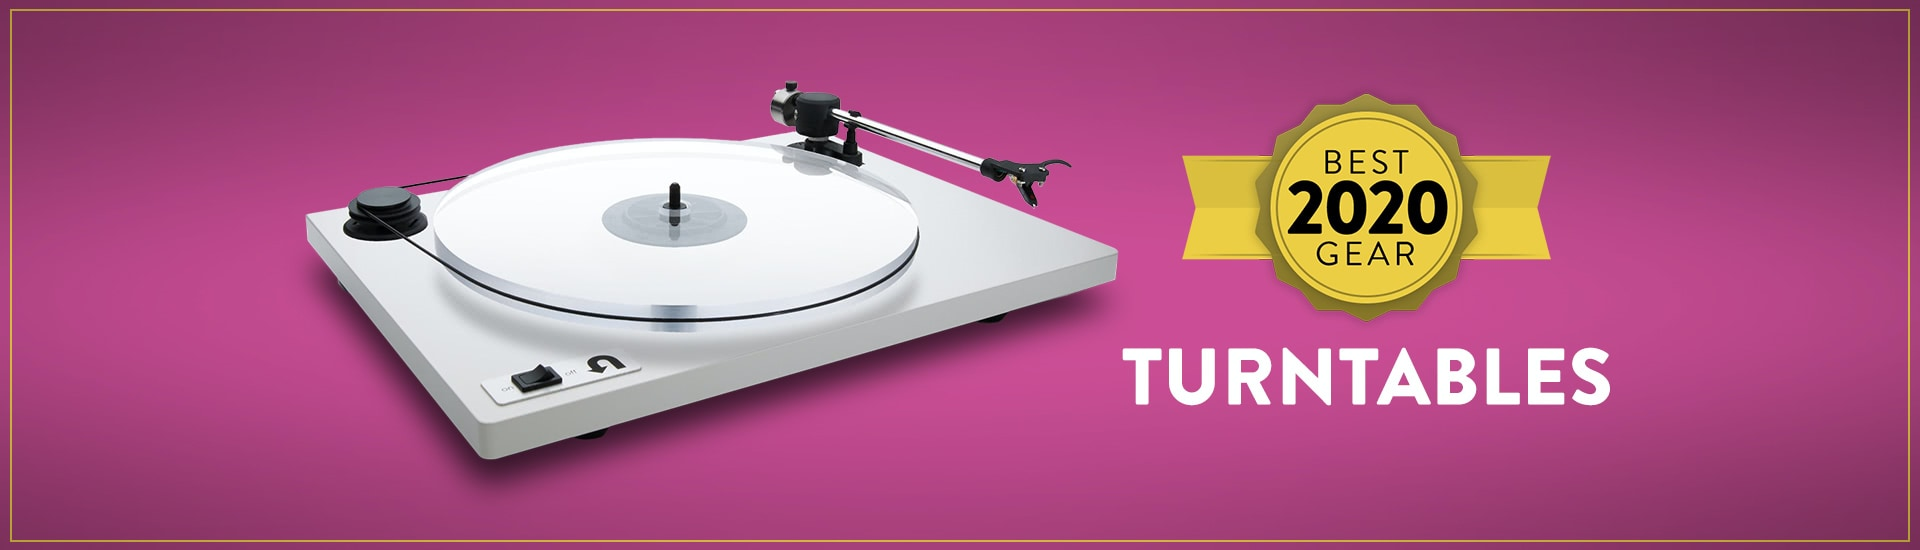 The Best Turntables of 2020